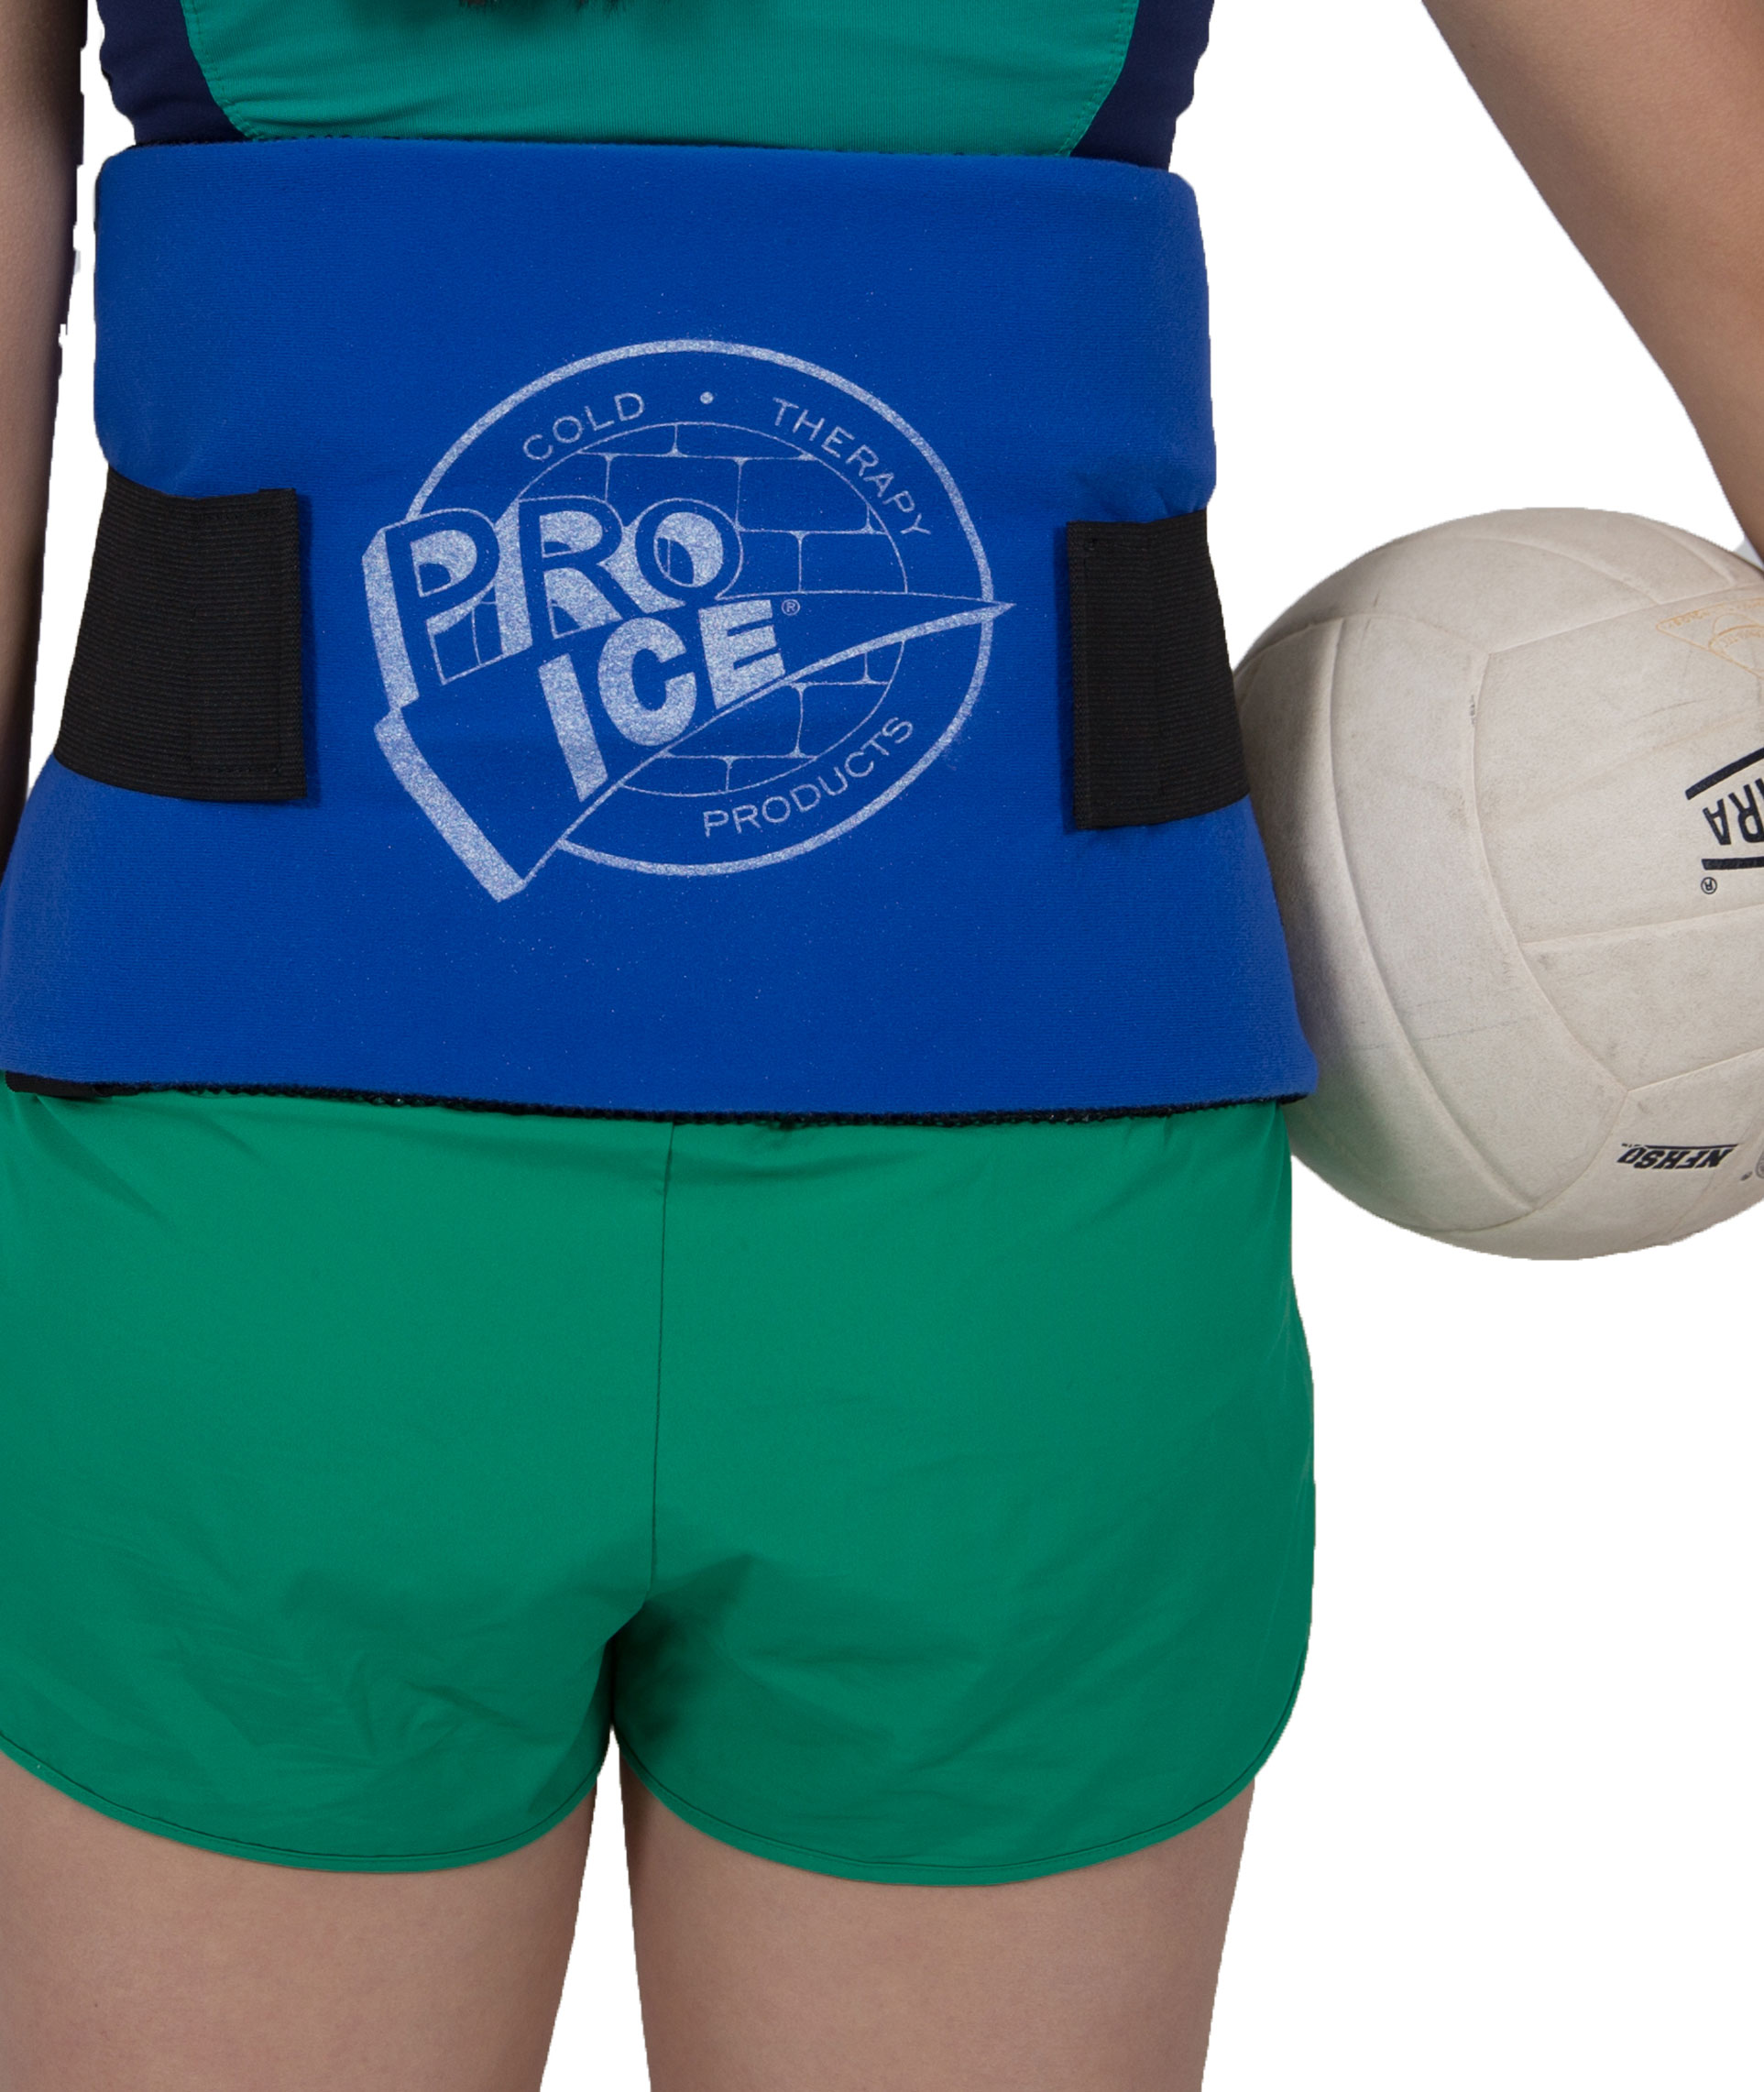 Univeral Ice Pack For Lower Back Pain and Many Other Areas Of the Body by Pro Ice pi260